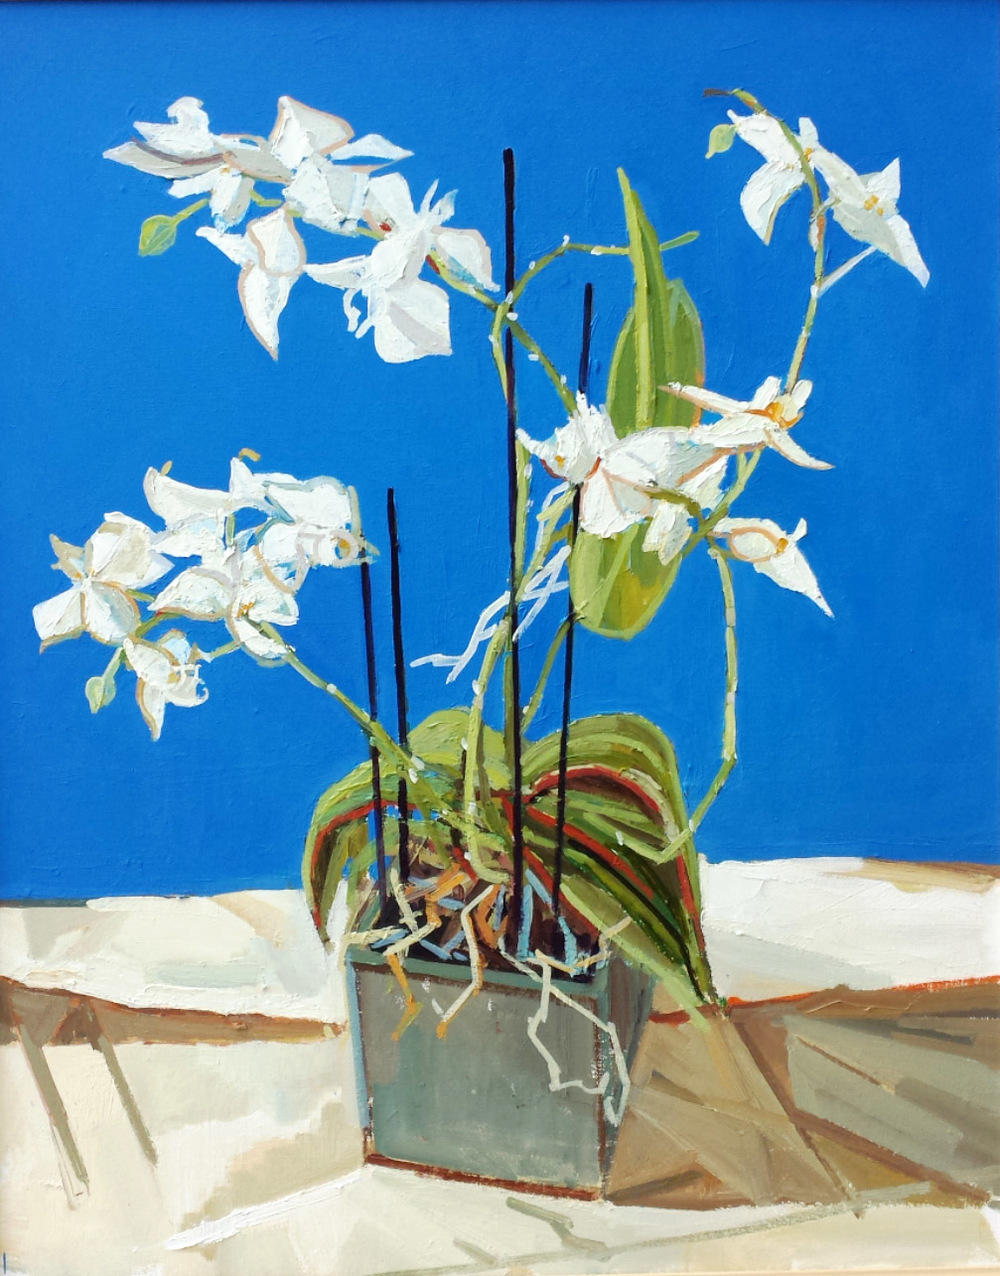 97 x 82 cm Blue Orchid, Oil on Canvas